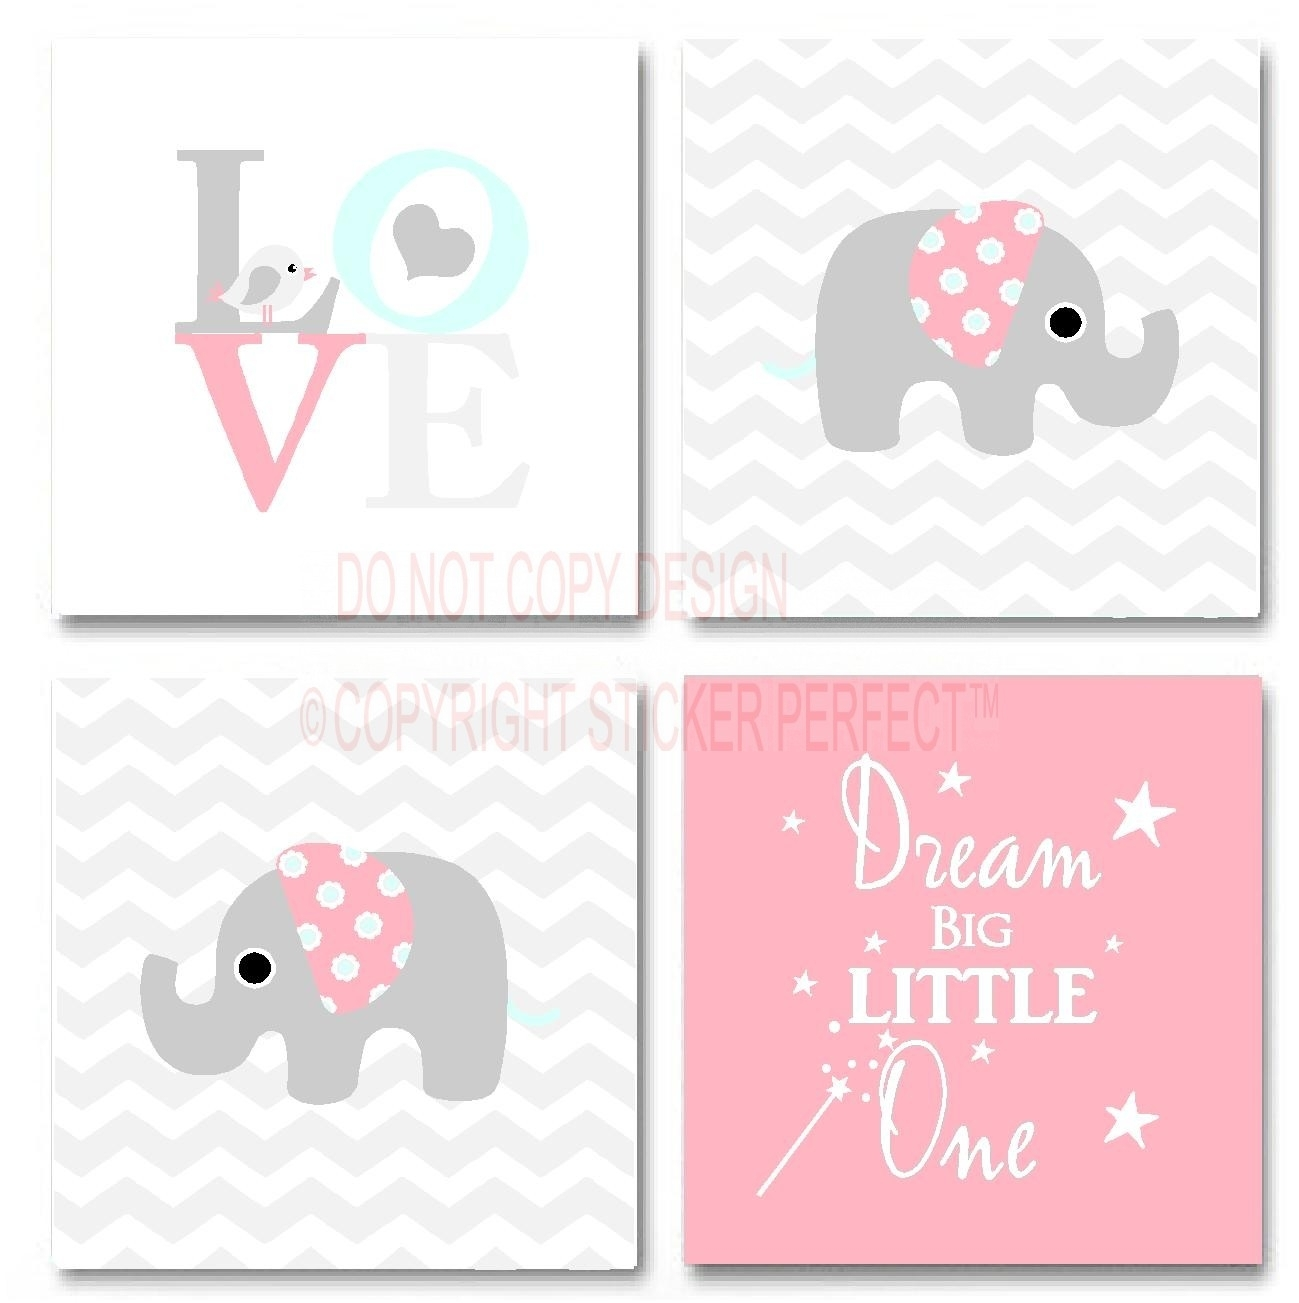 Framed Canvas Print Love 4 Piece Set #2 Cute Elephant Bird Pertaining To Inspirational Wall Art Canvas (View 6 of 20)